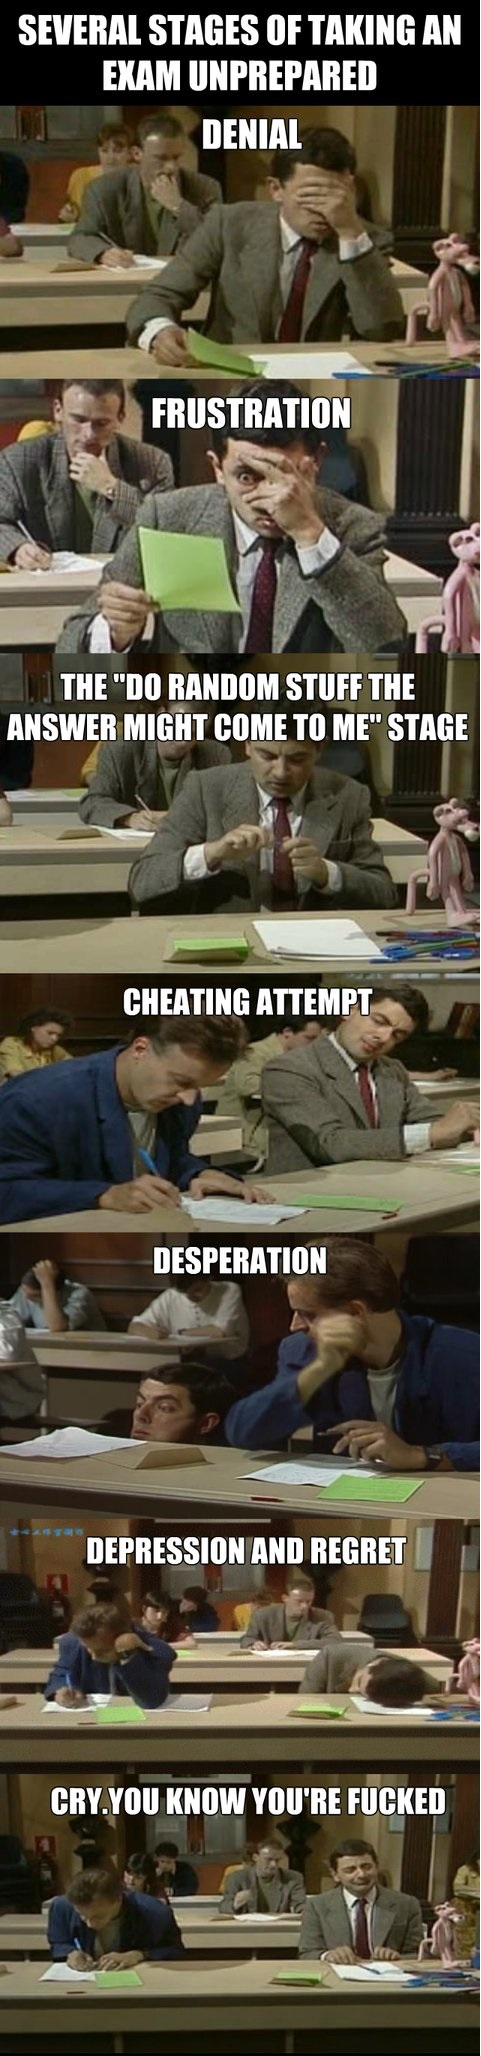 funny-picture-stages-taking-exam